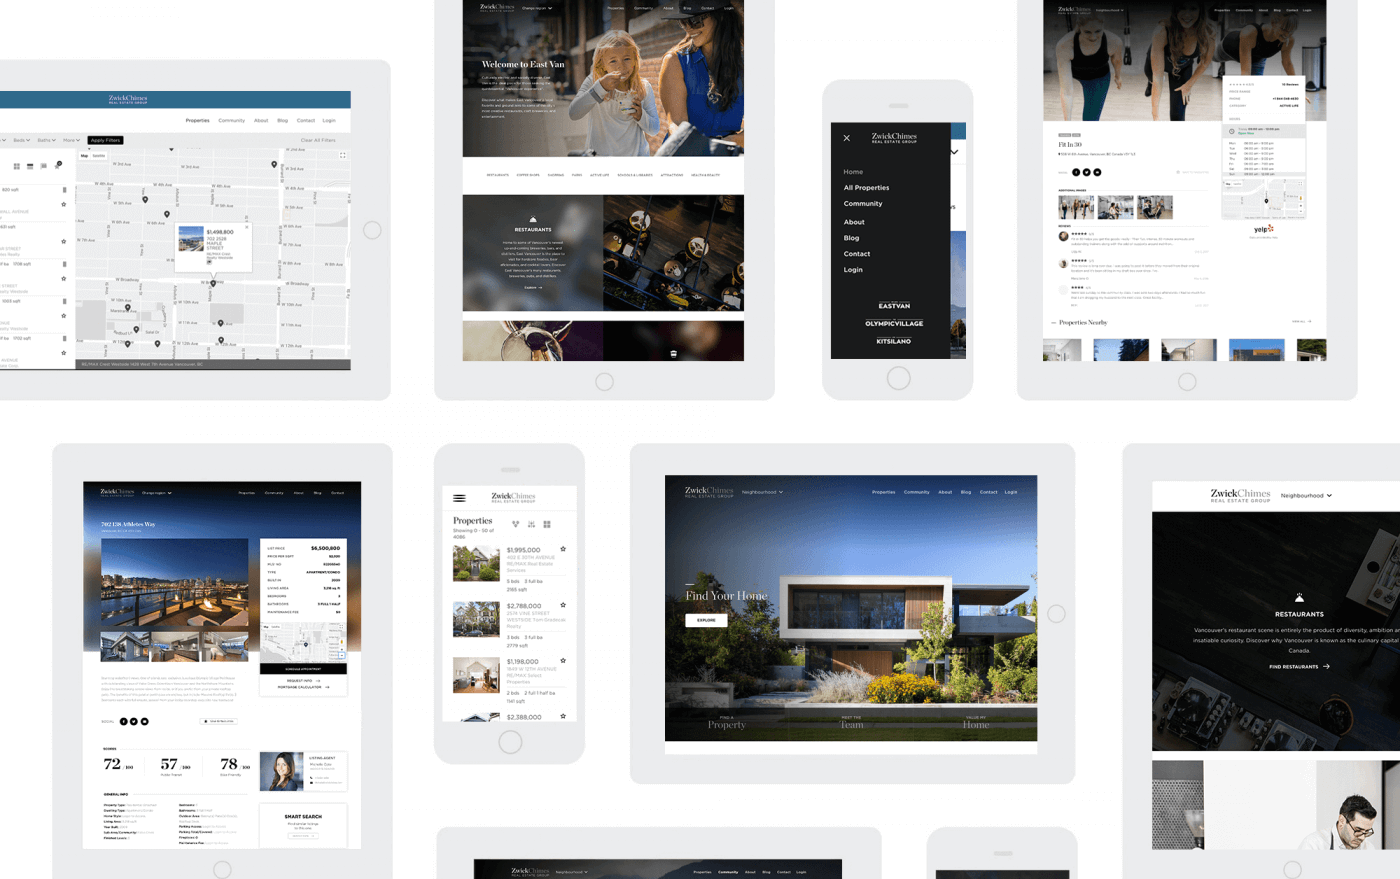 Mockups of the zwick chimes real estate website